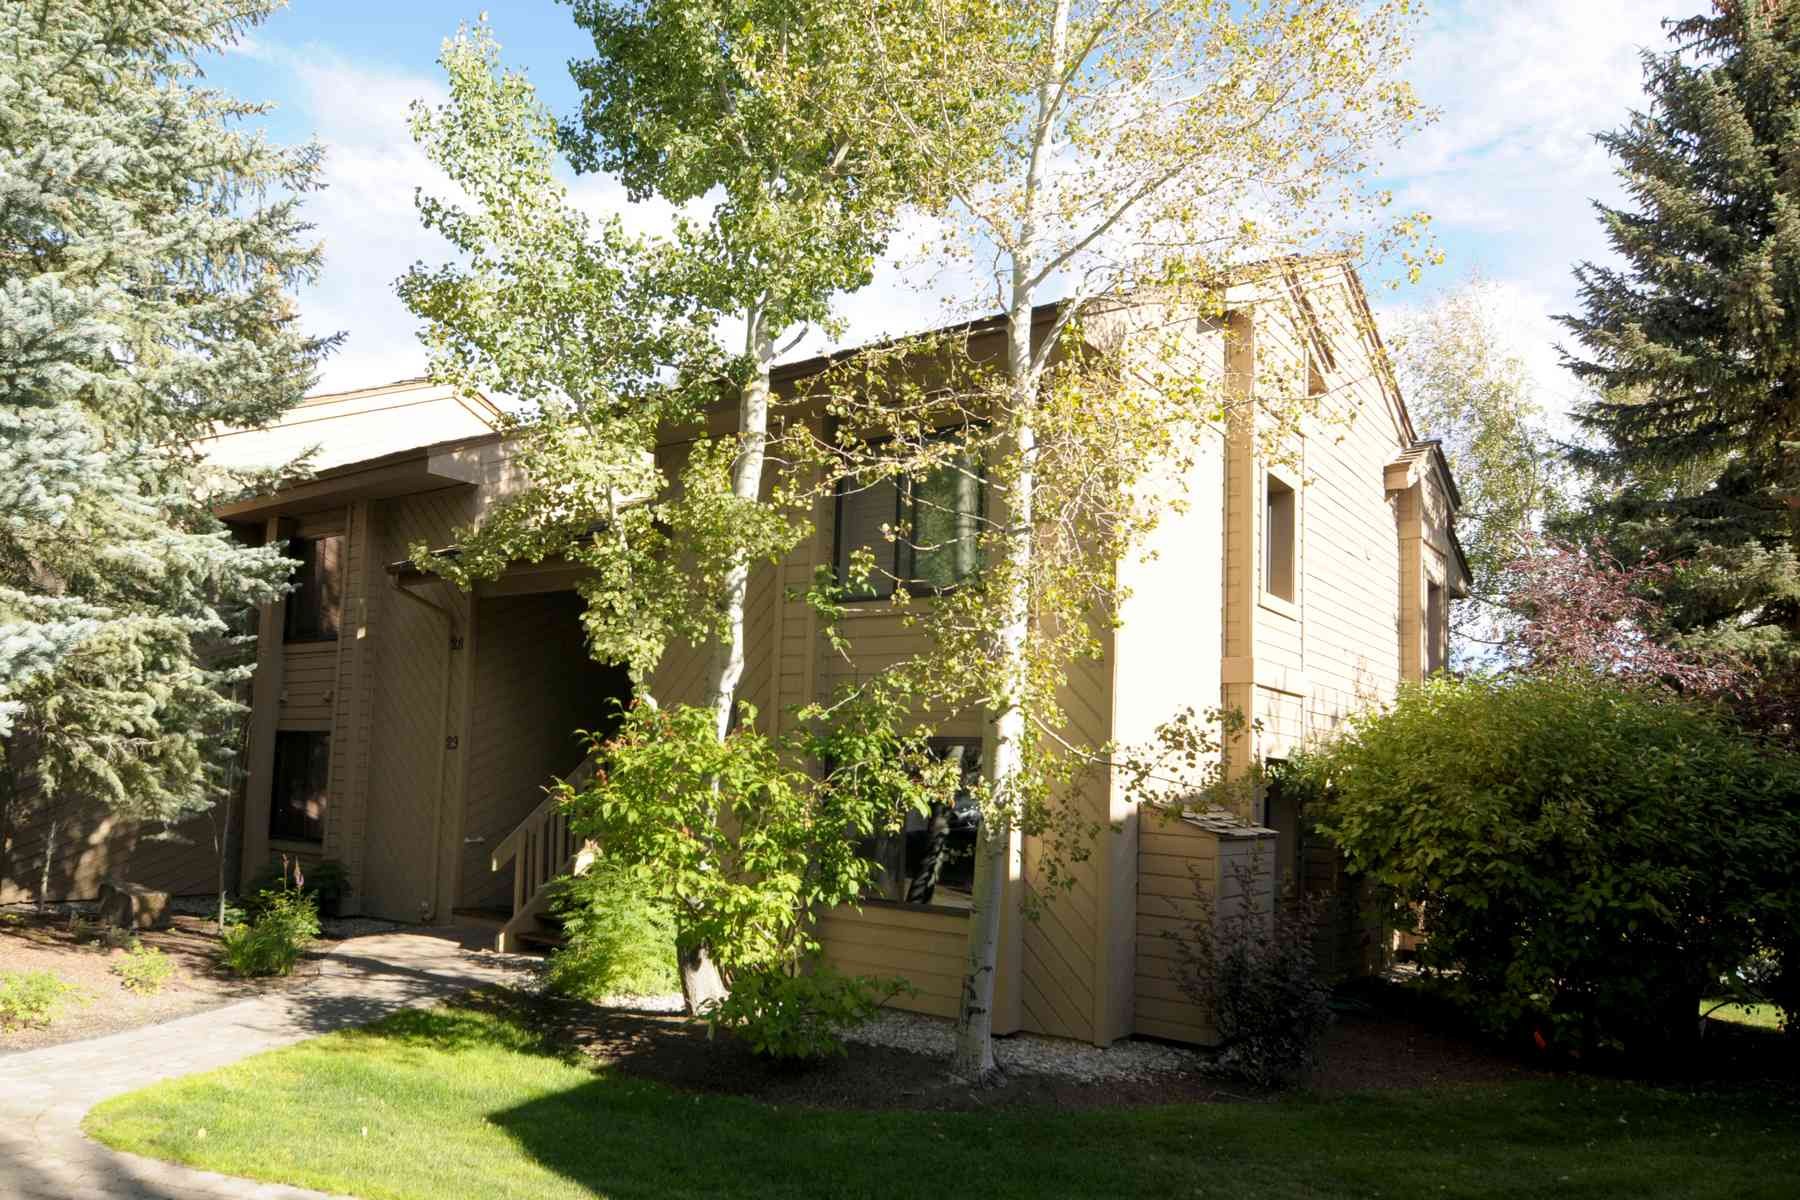 Condominium for Sale at Sun Valley Affordable 2327 Ridge Lane Sun Valley, Idaho 83353 United States